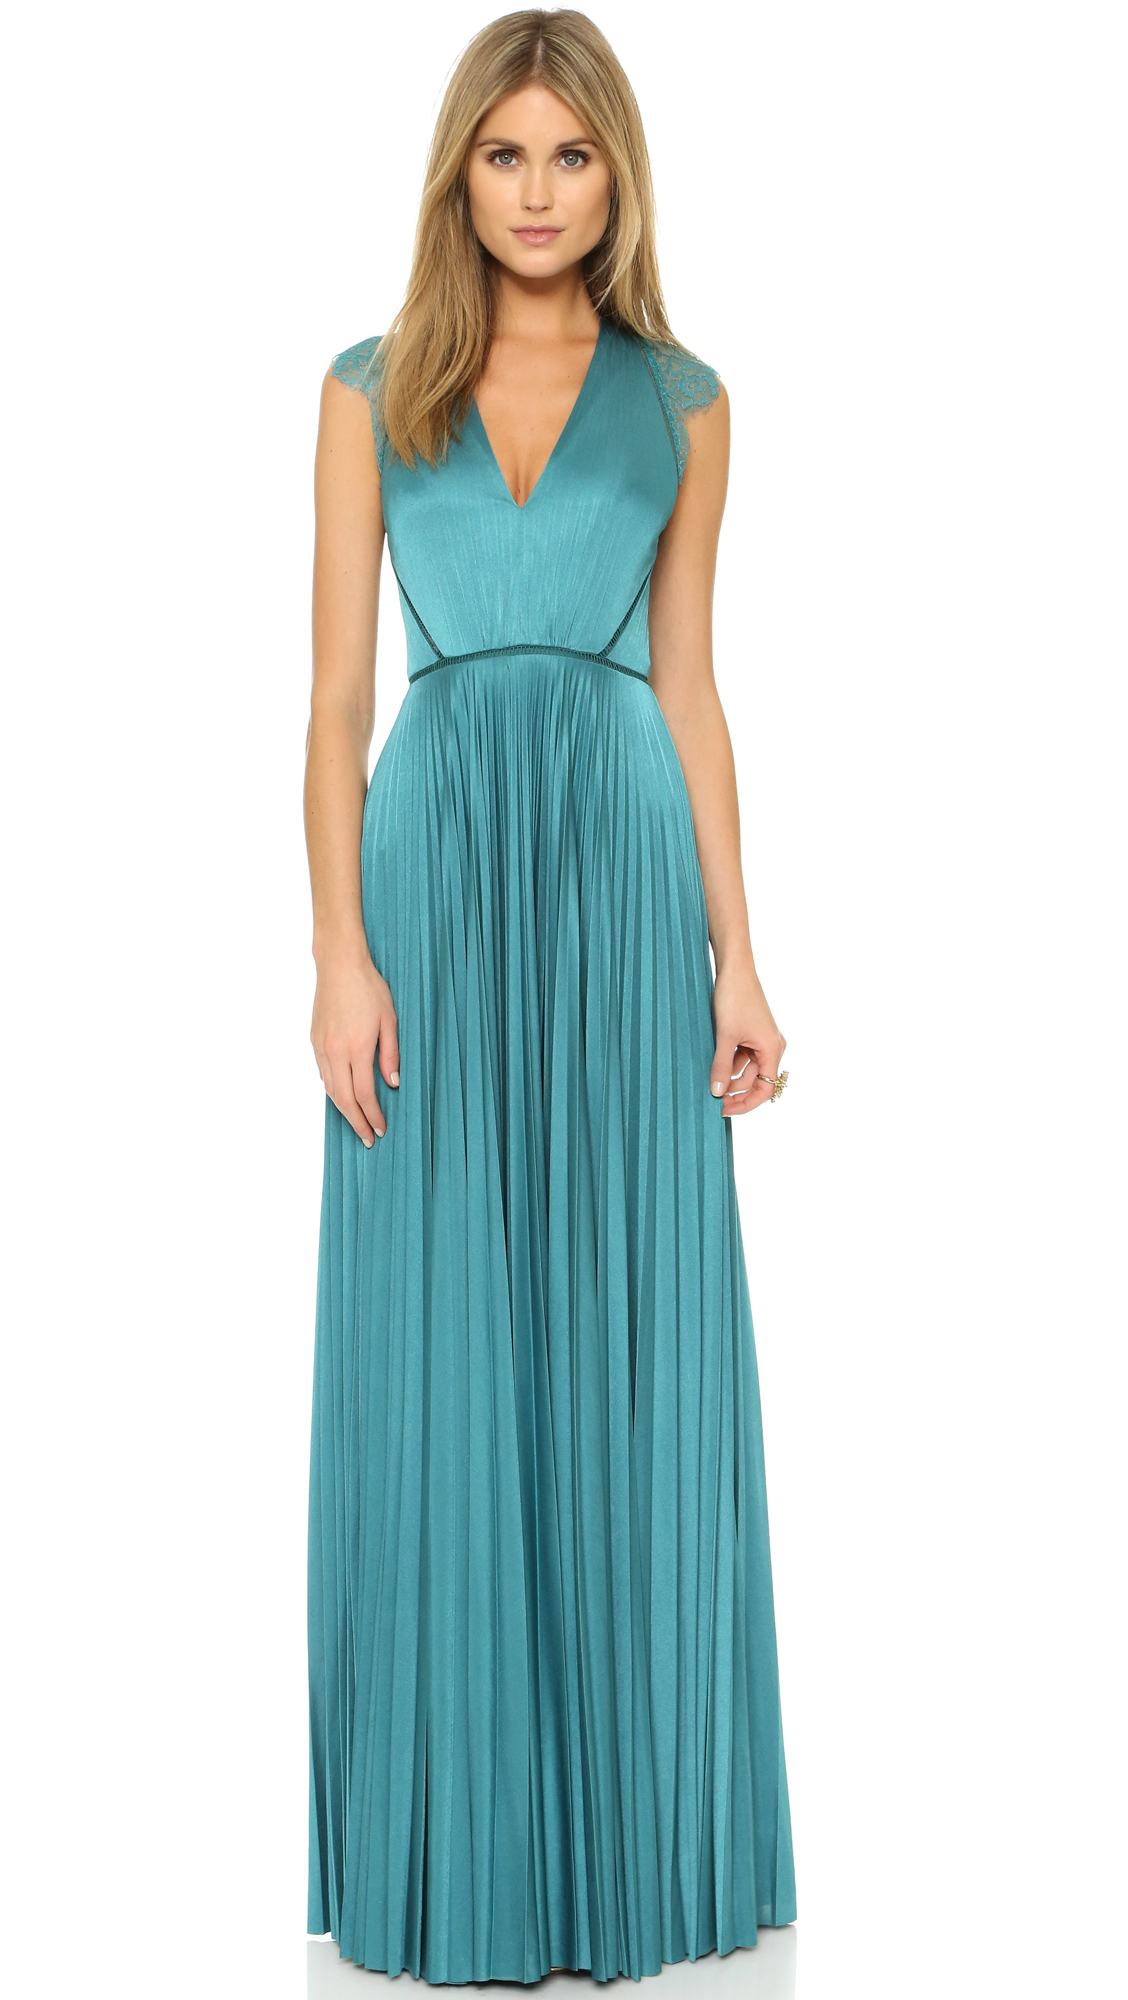 Lyst - Catherine Deane Elouise Sunray Pleated Gown in Blue